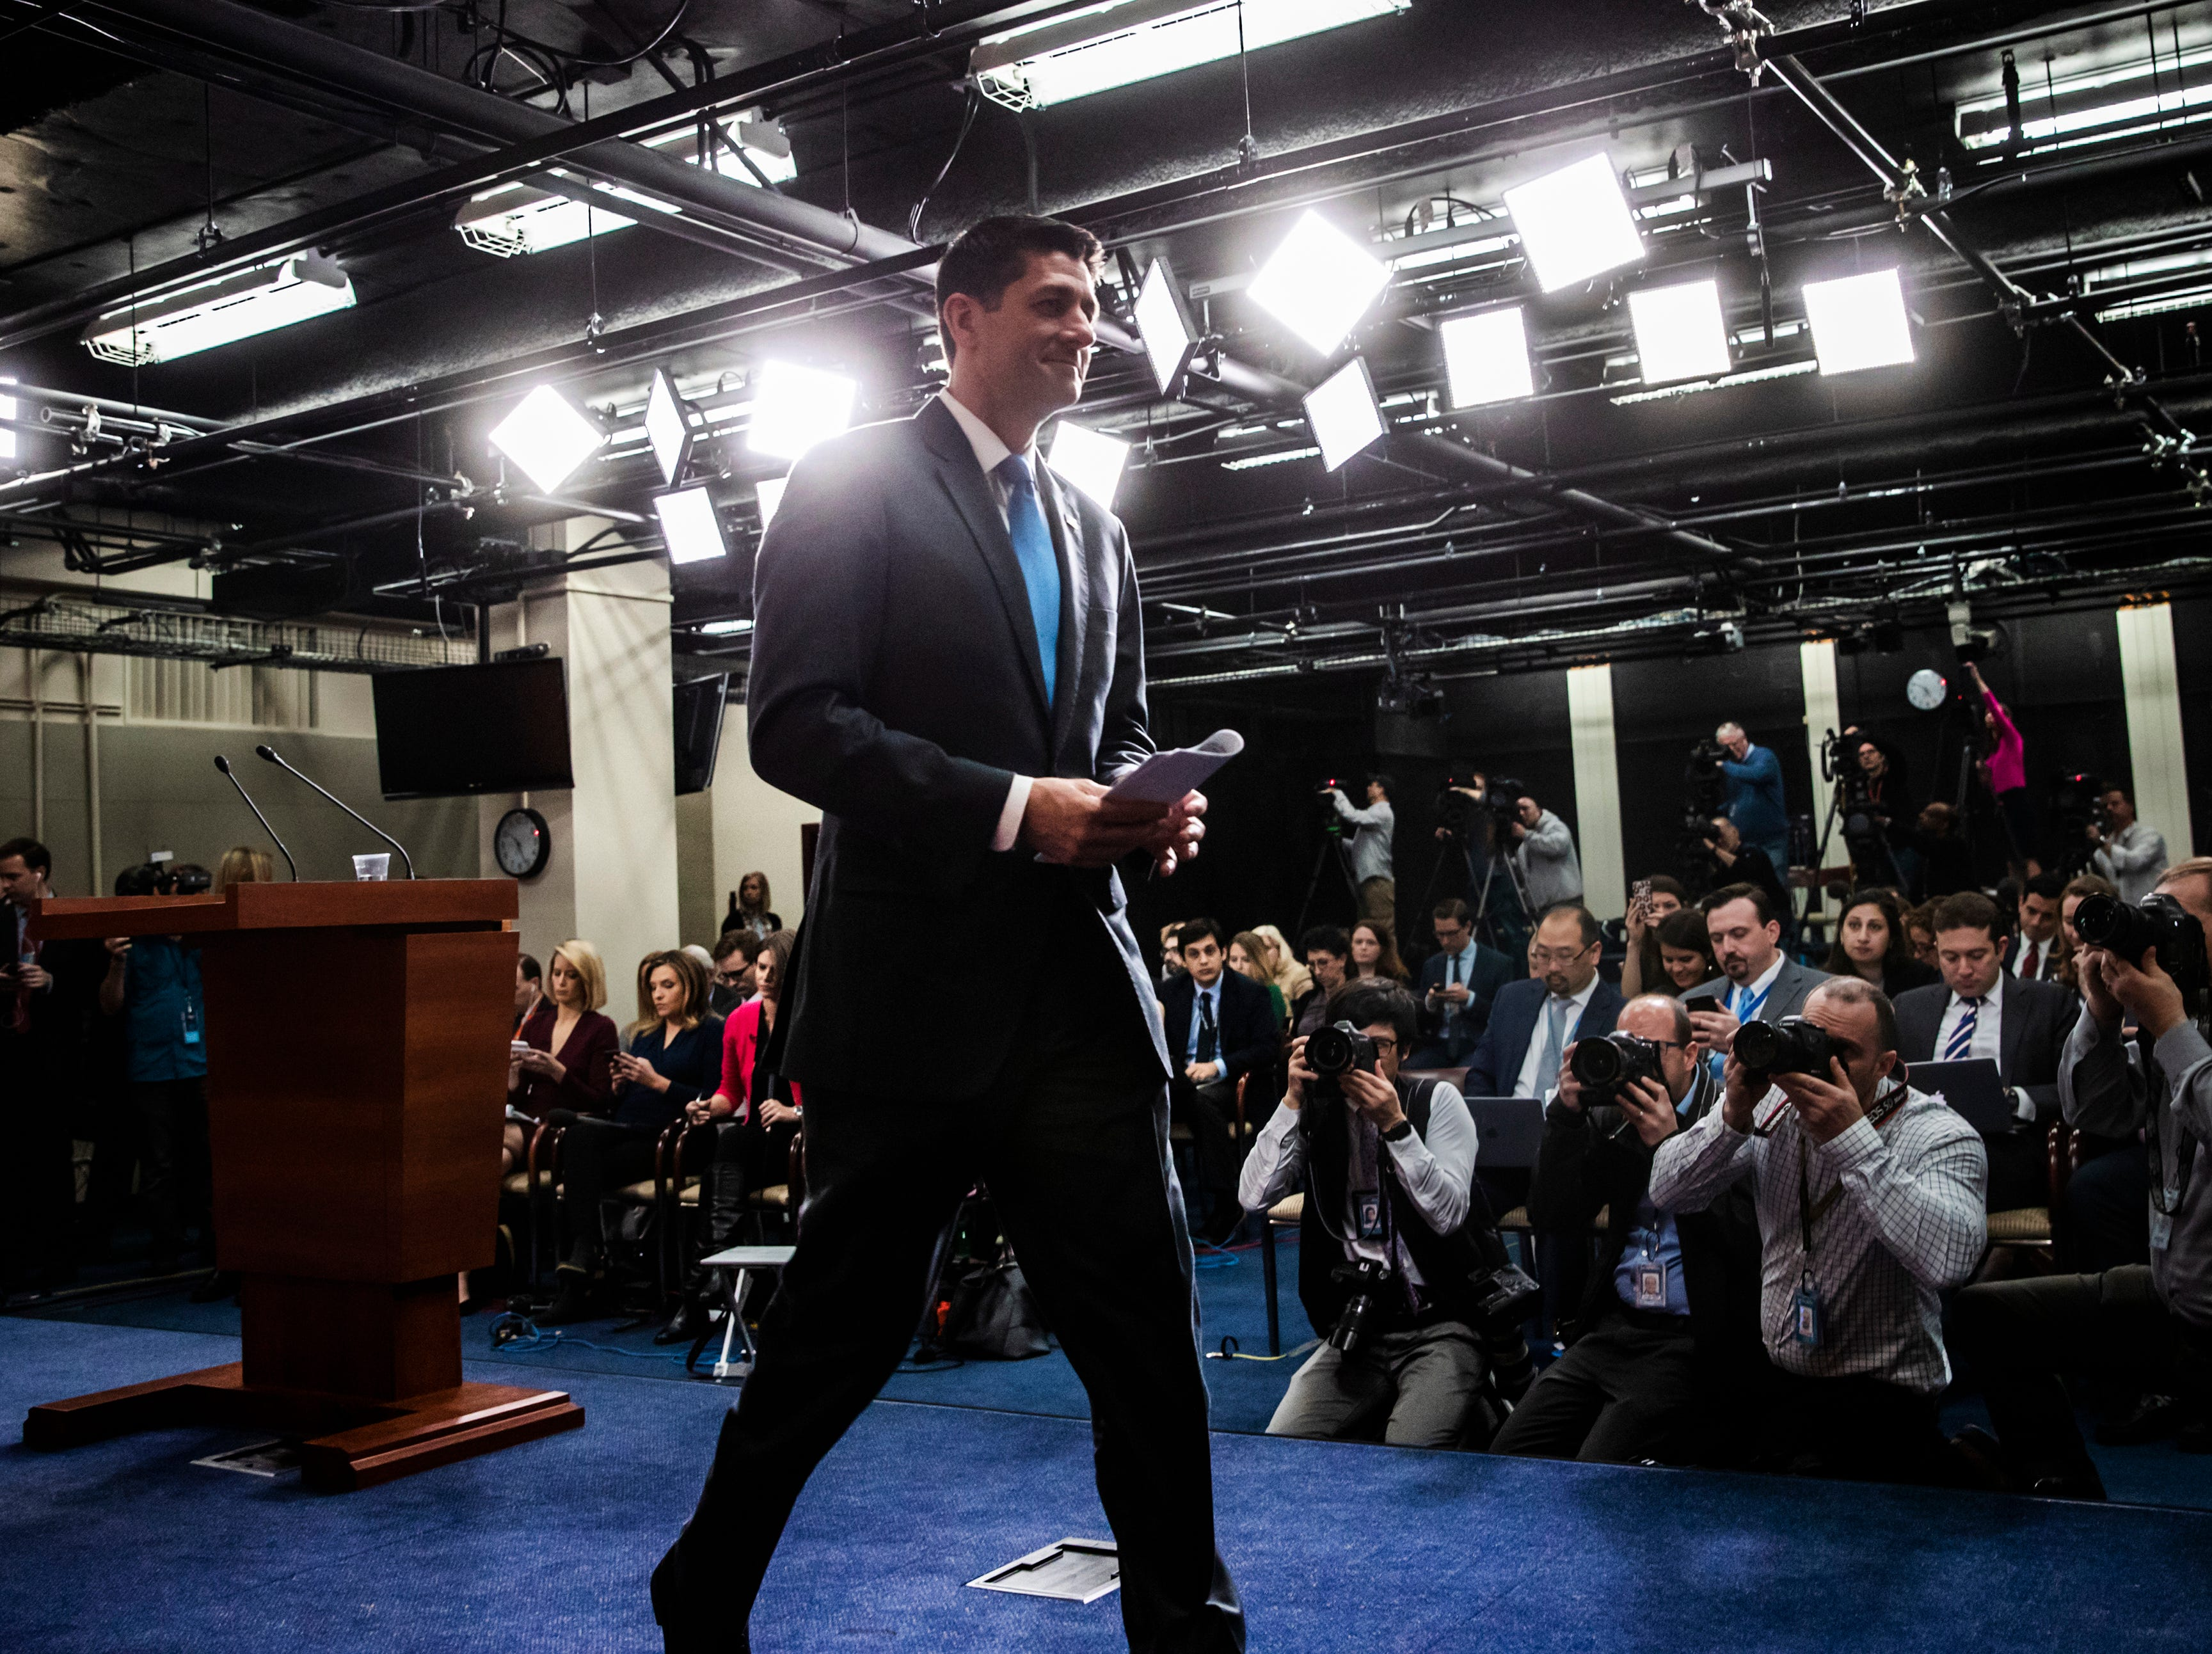 April 11, 2018: Speaker of the House Paul Ryan, R-Wis., tells reporters he will not run for re-election amid Republican concerns over keeping their majority in the House of Representatives, during a news conference at the Capitol in Washington.